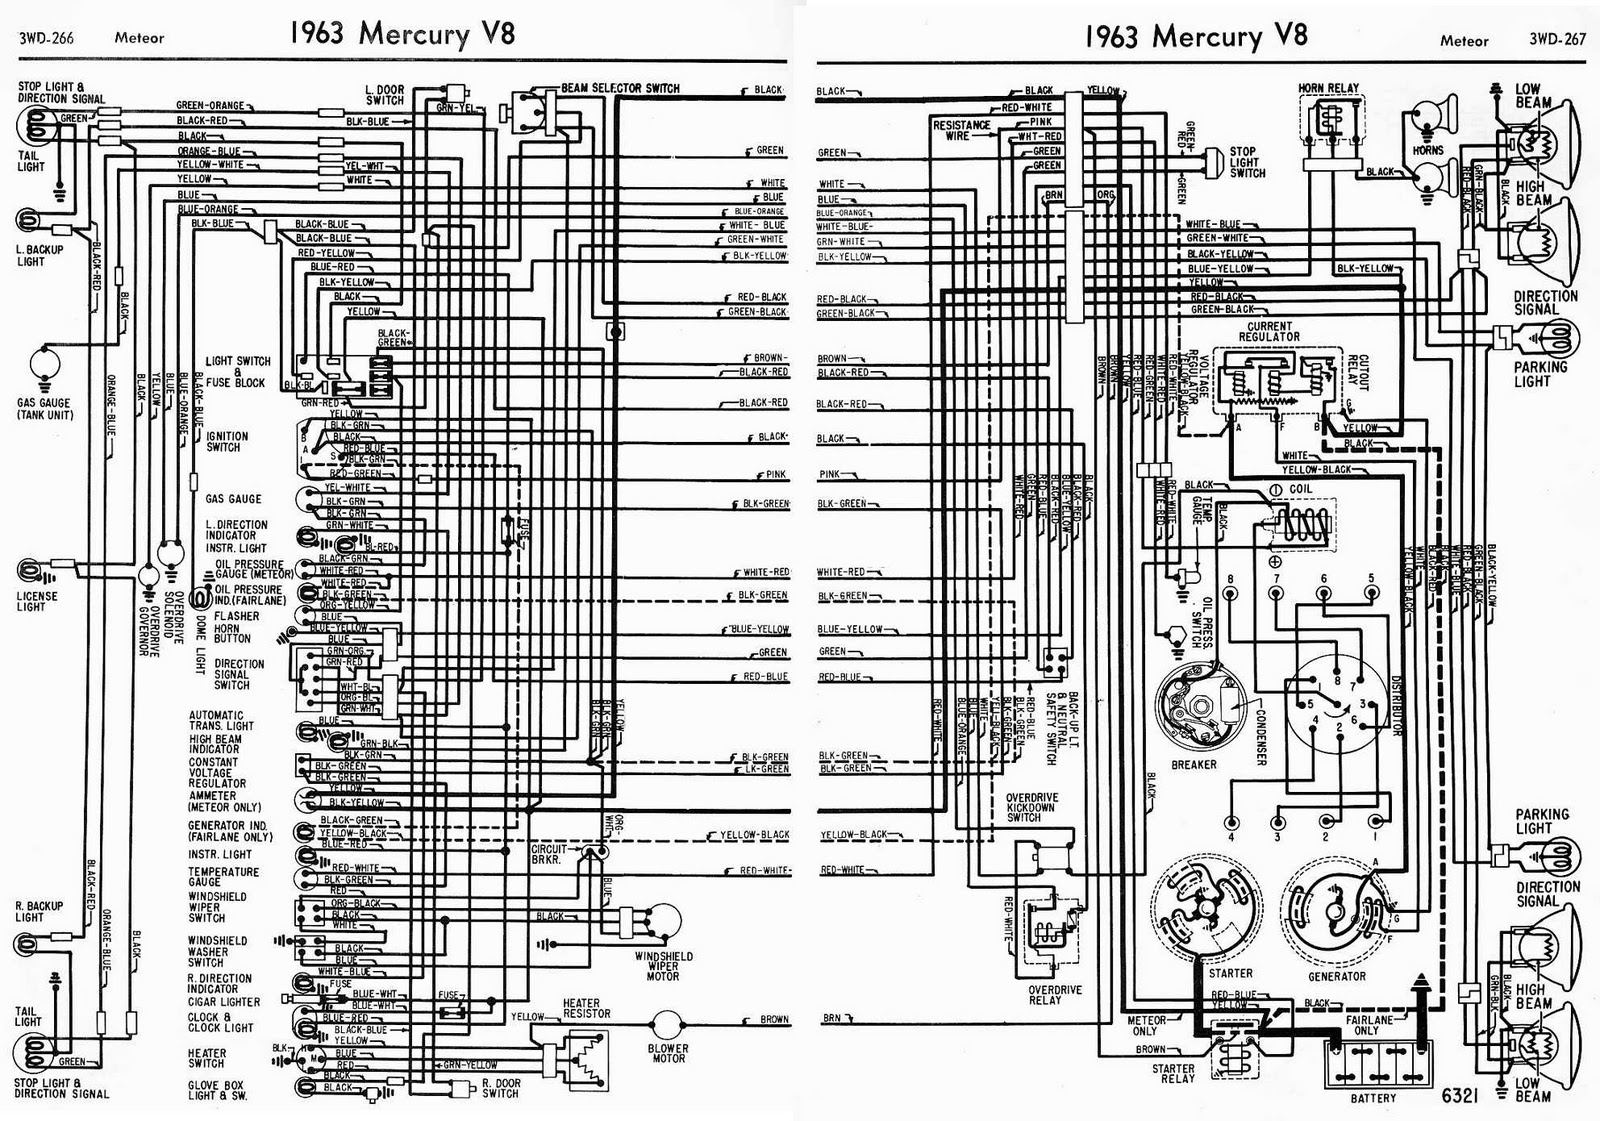 Wiring diagrams 911 december 2011 1963 mercury v8 meteor complete wiring diagram ccuart Image collections